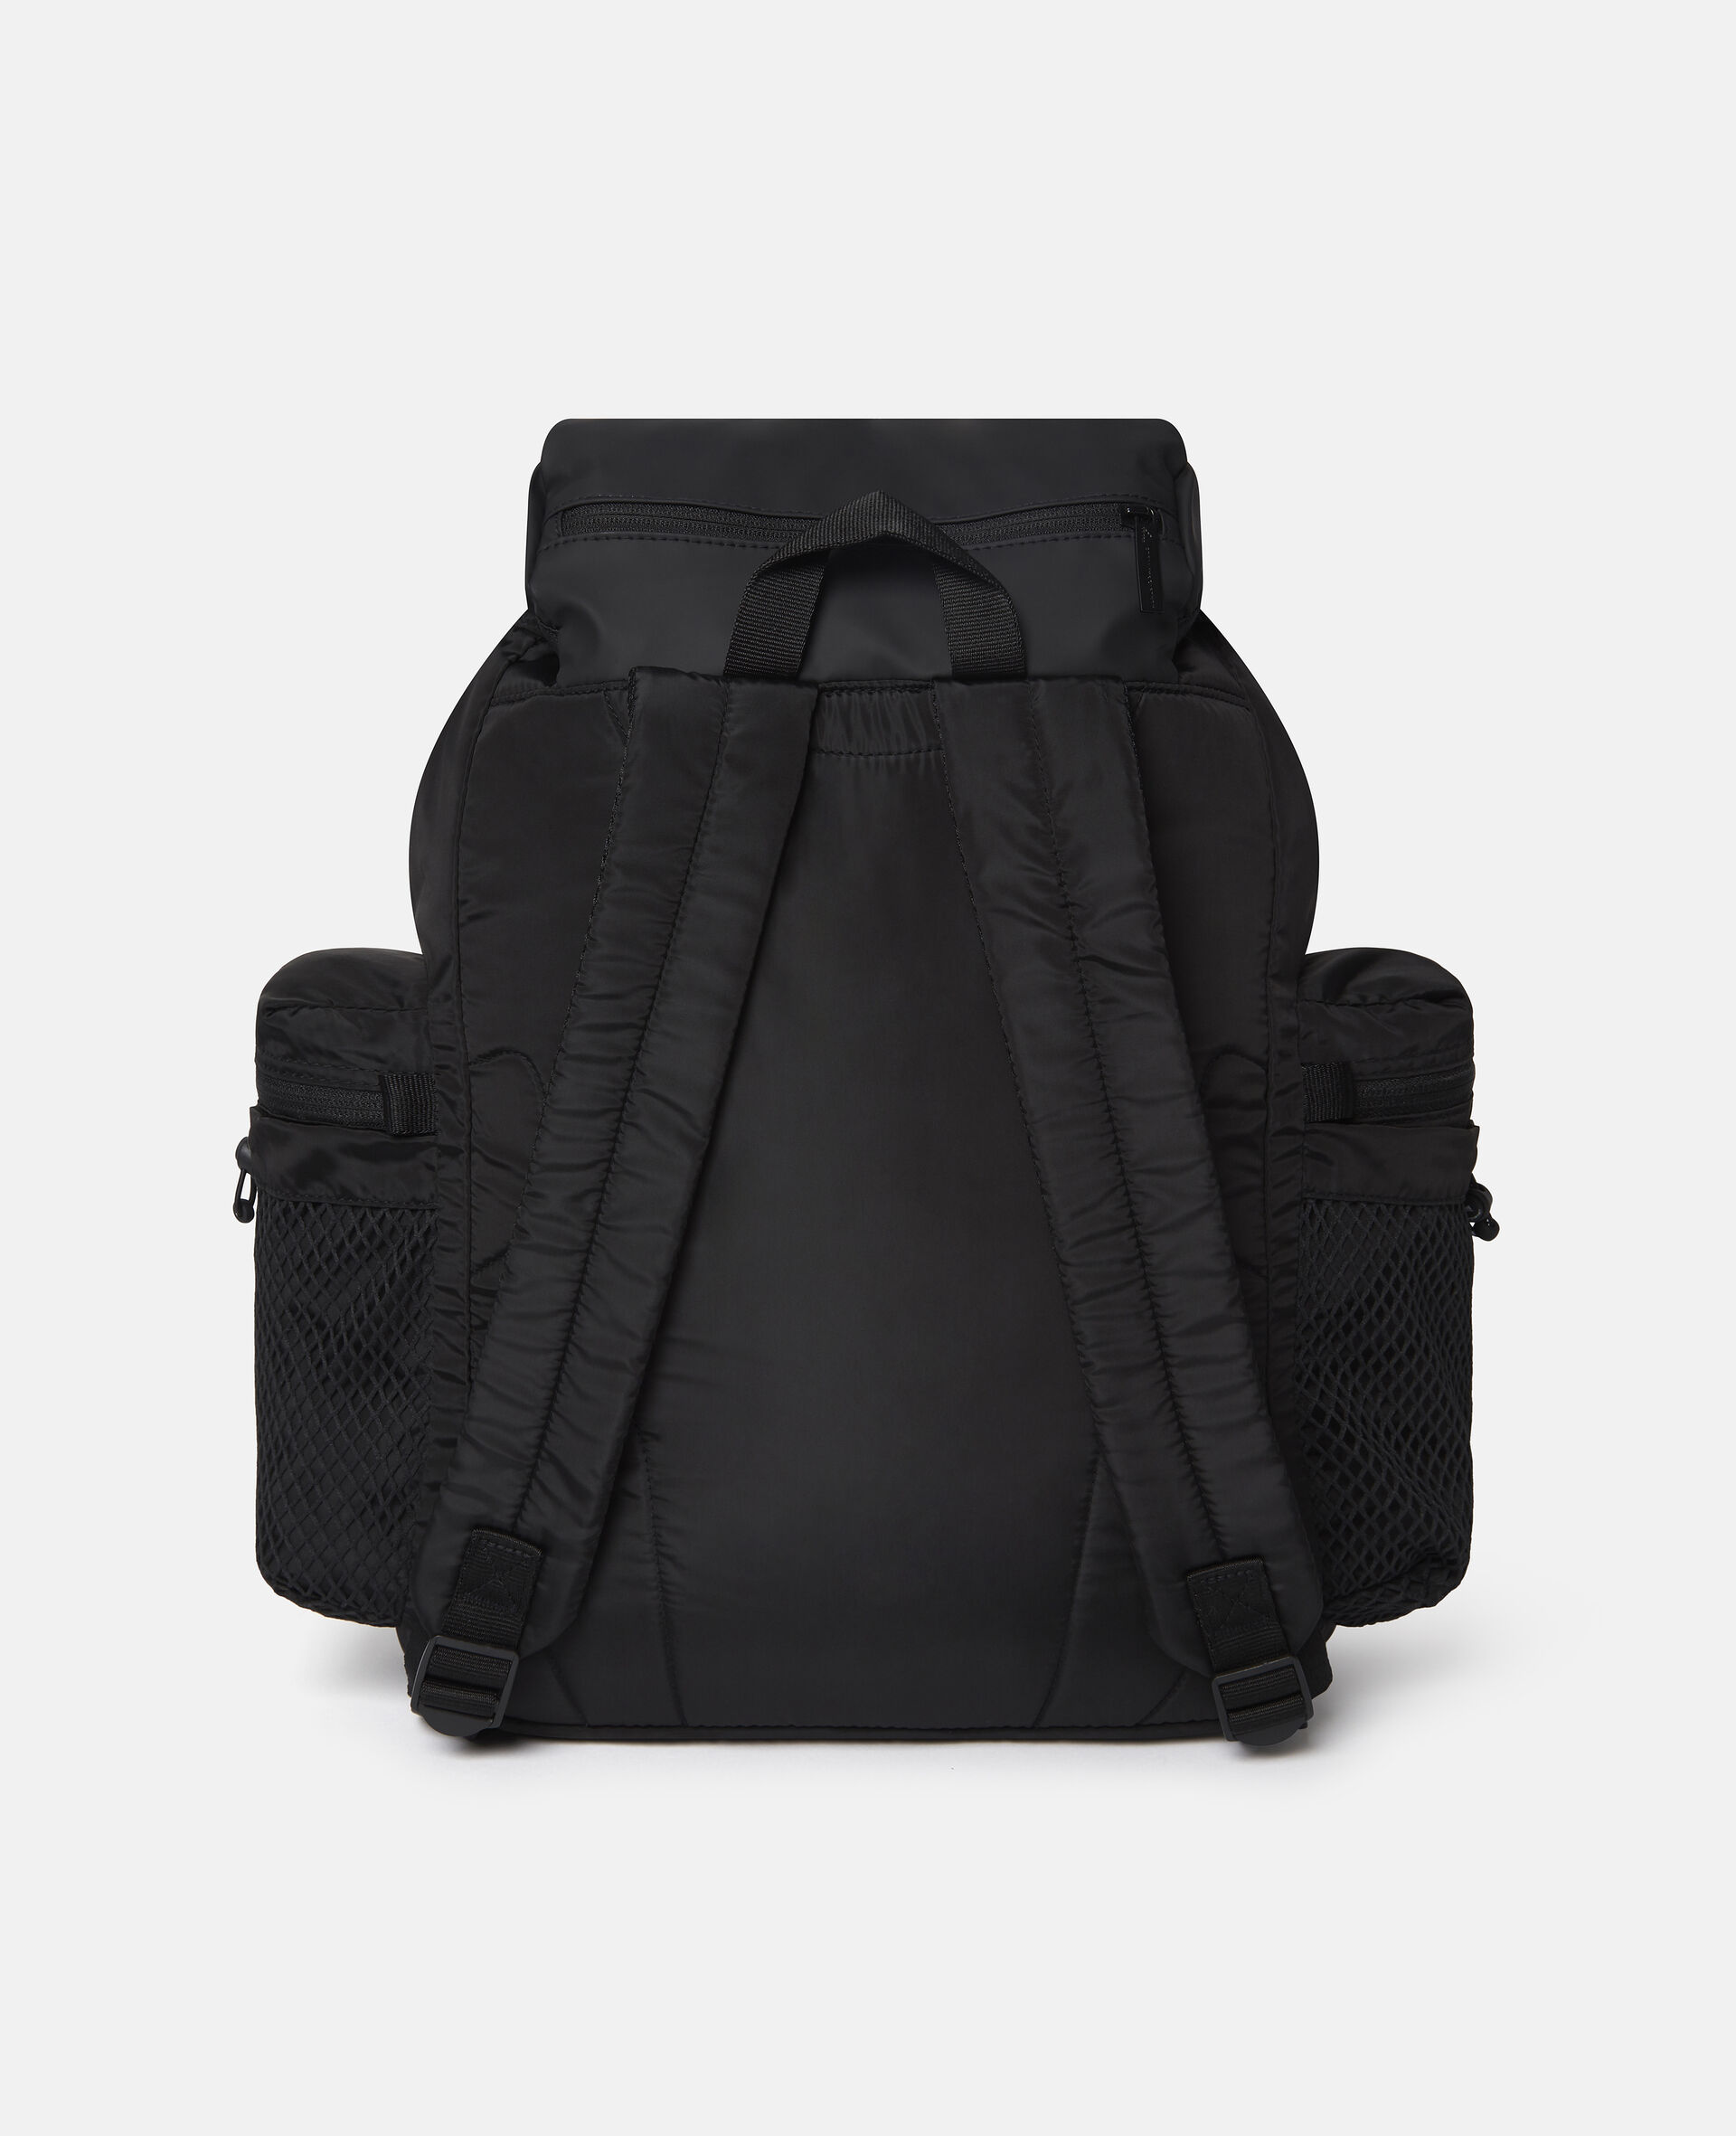 Backpack-Multicolour-large image number 4